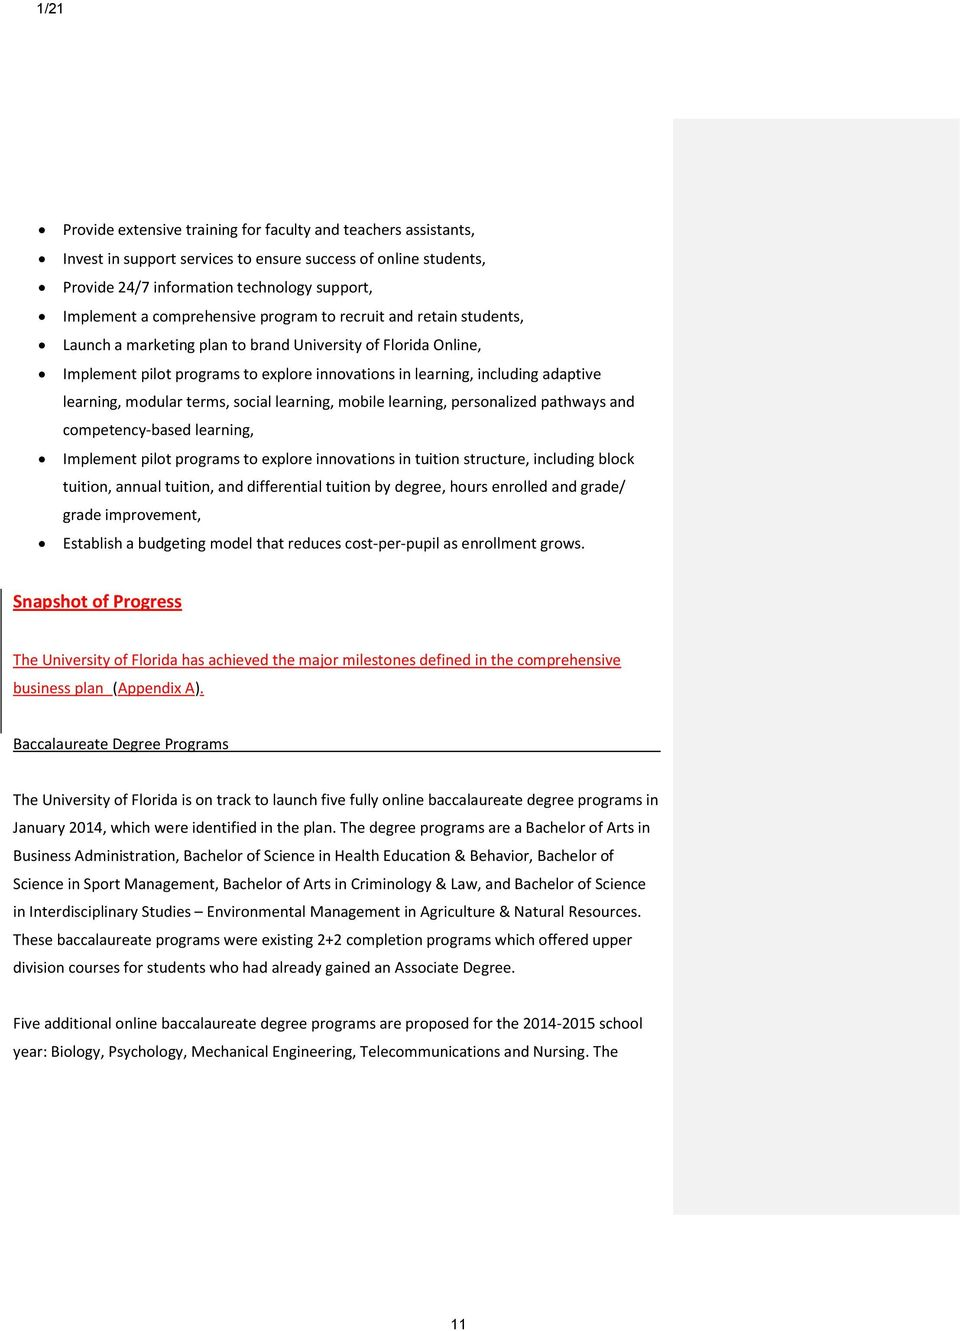 Advisory Board for the Institute for Online Learning - PDF